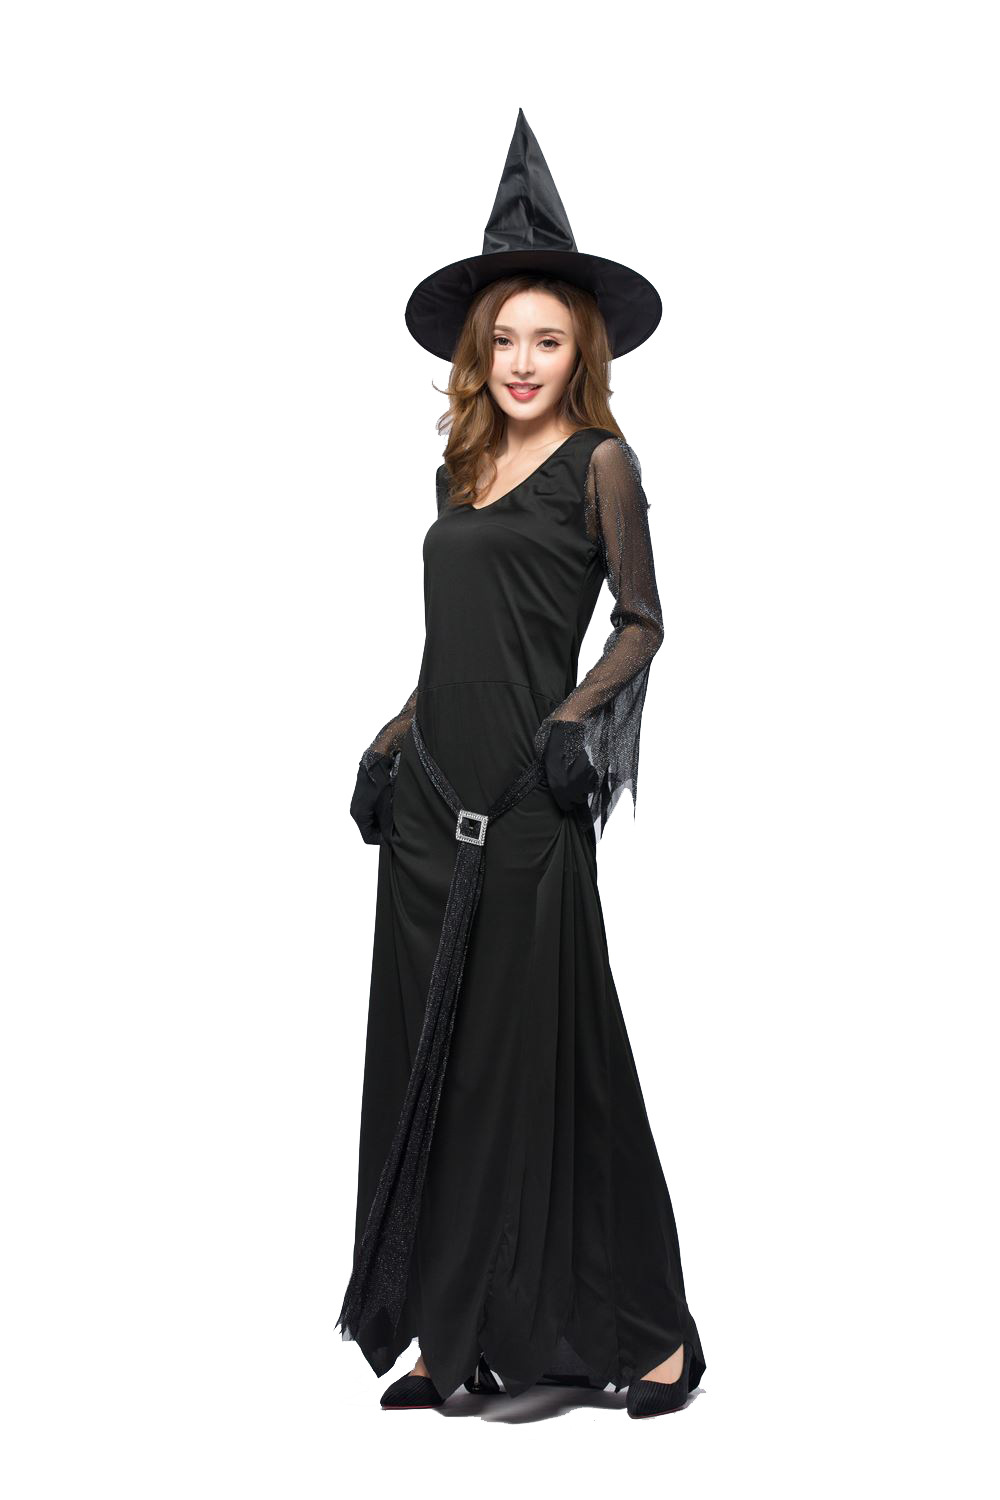 ef453fd45f5 New 2019 Black Sexy Halloween Costume For Women Plus Size long dress evil  witch Costume Halloween Adulte Femme Disfraces Mujer